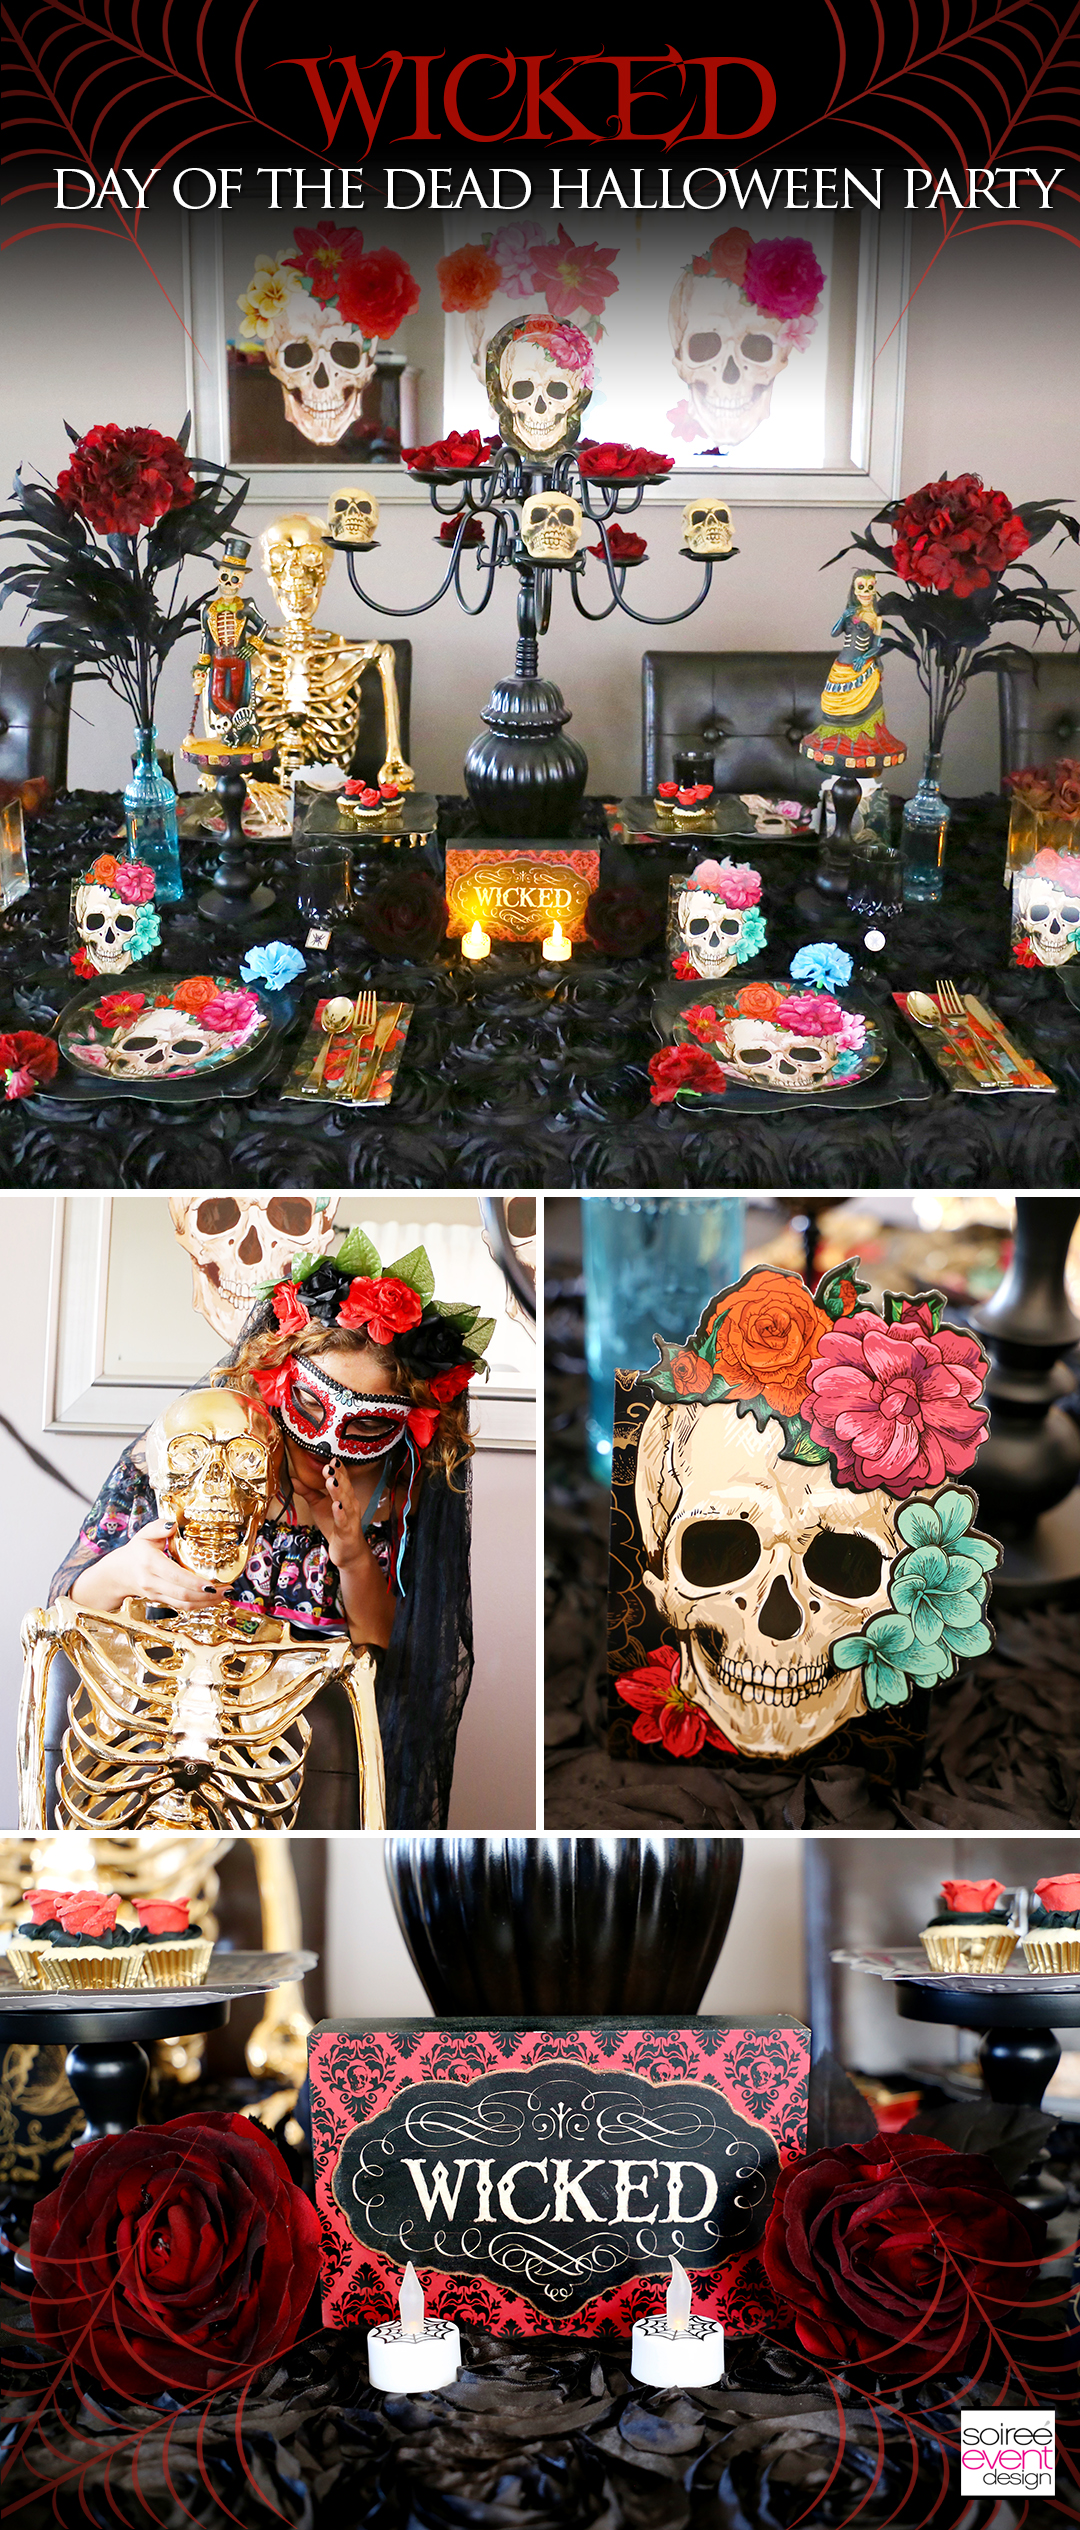 Day of the Dead Party Ideas 2